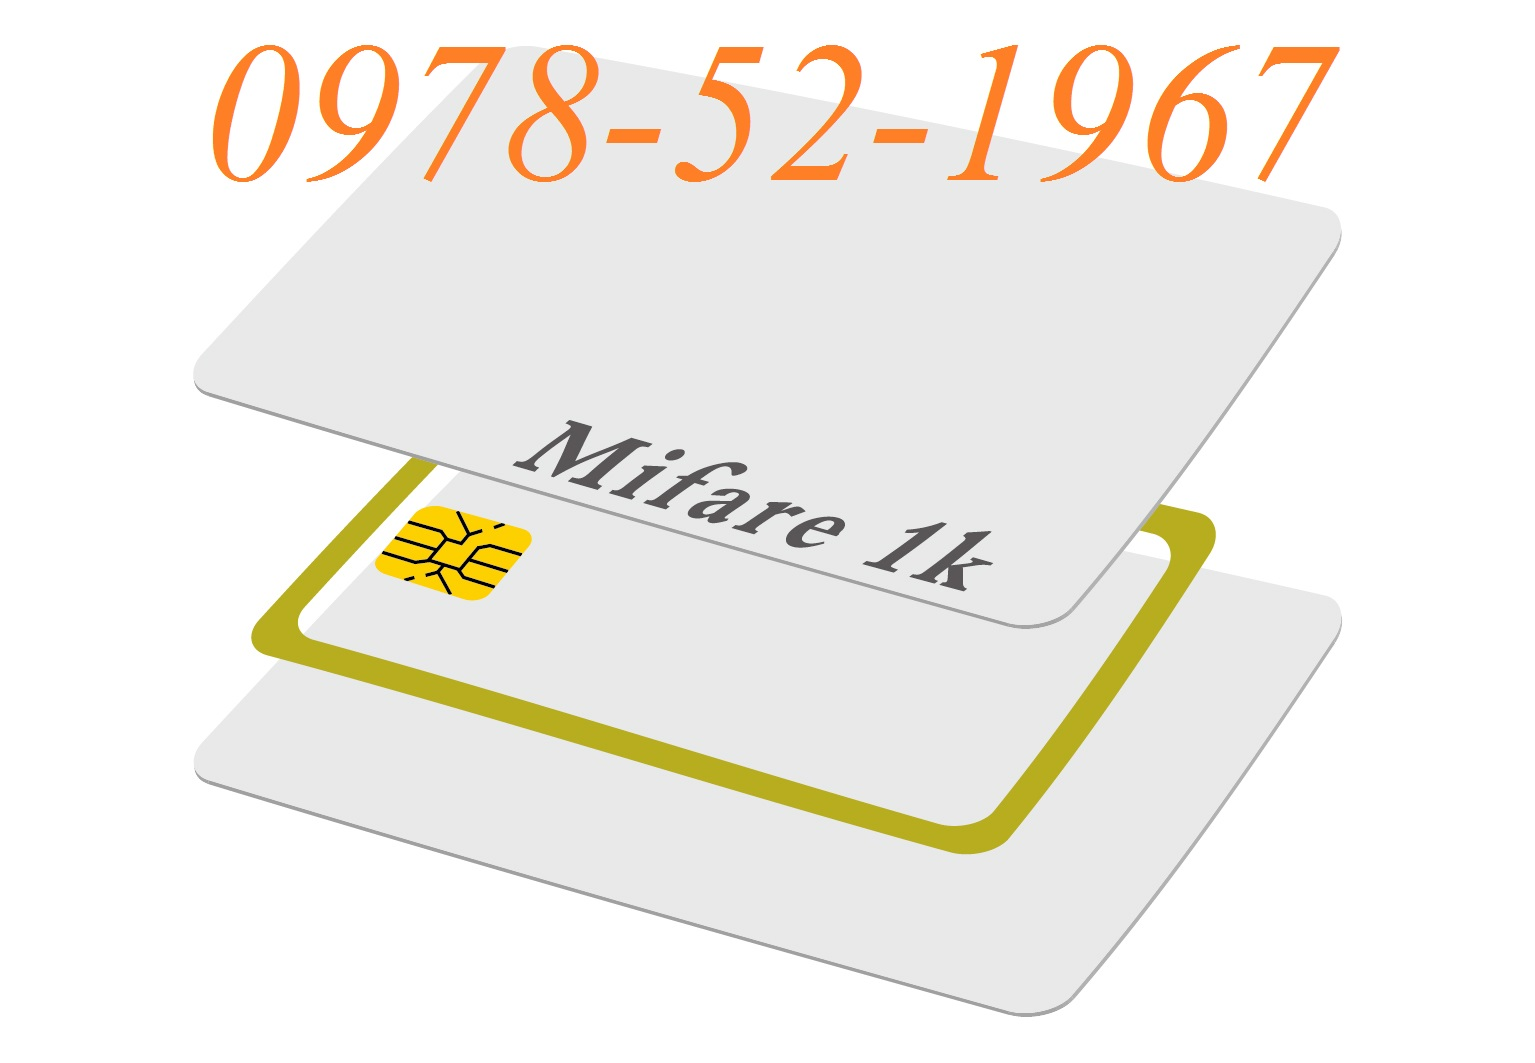 The Mifare 13.56 Mhz